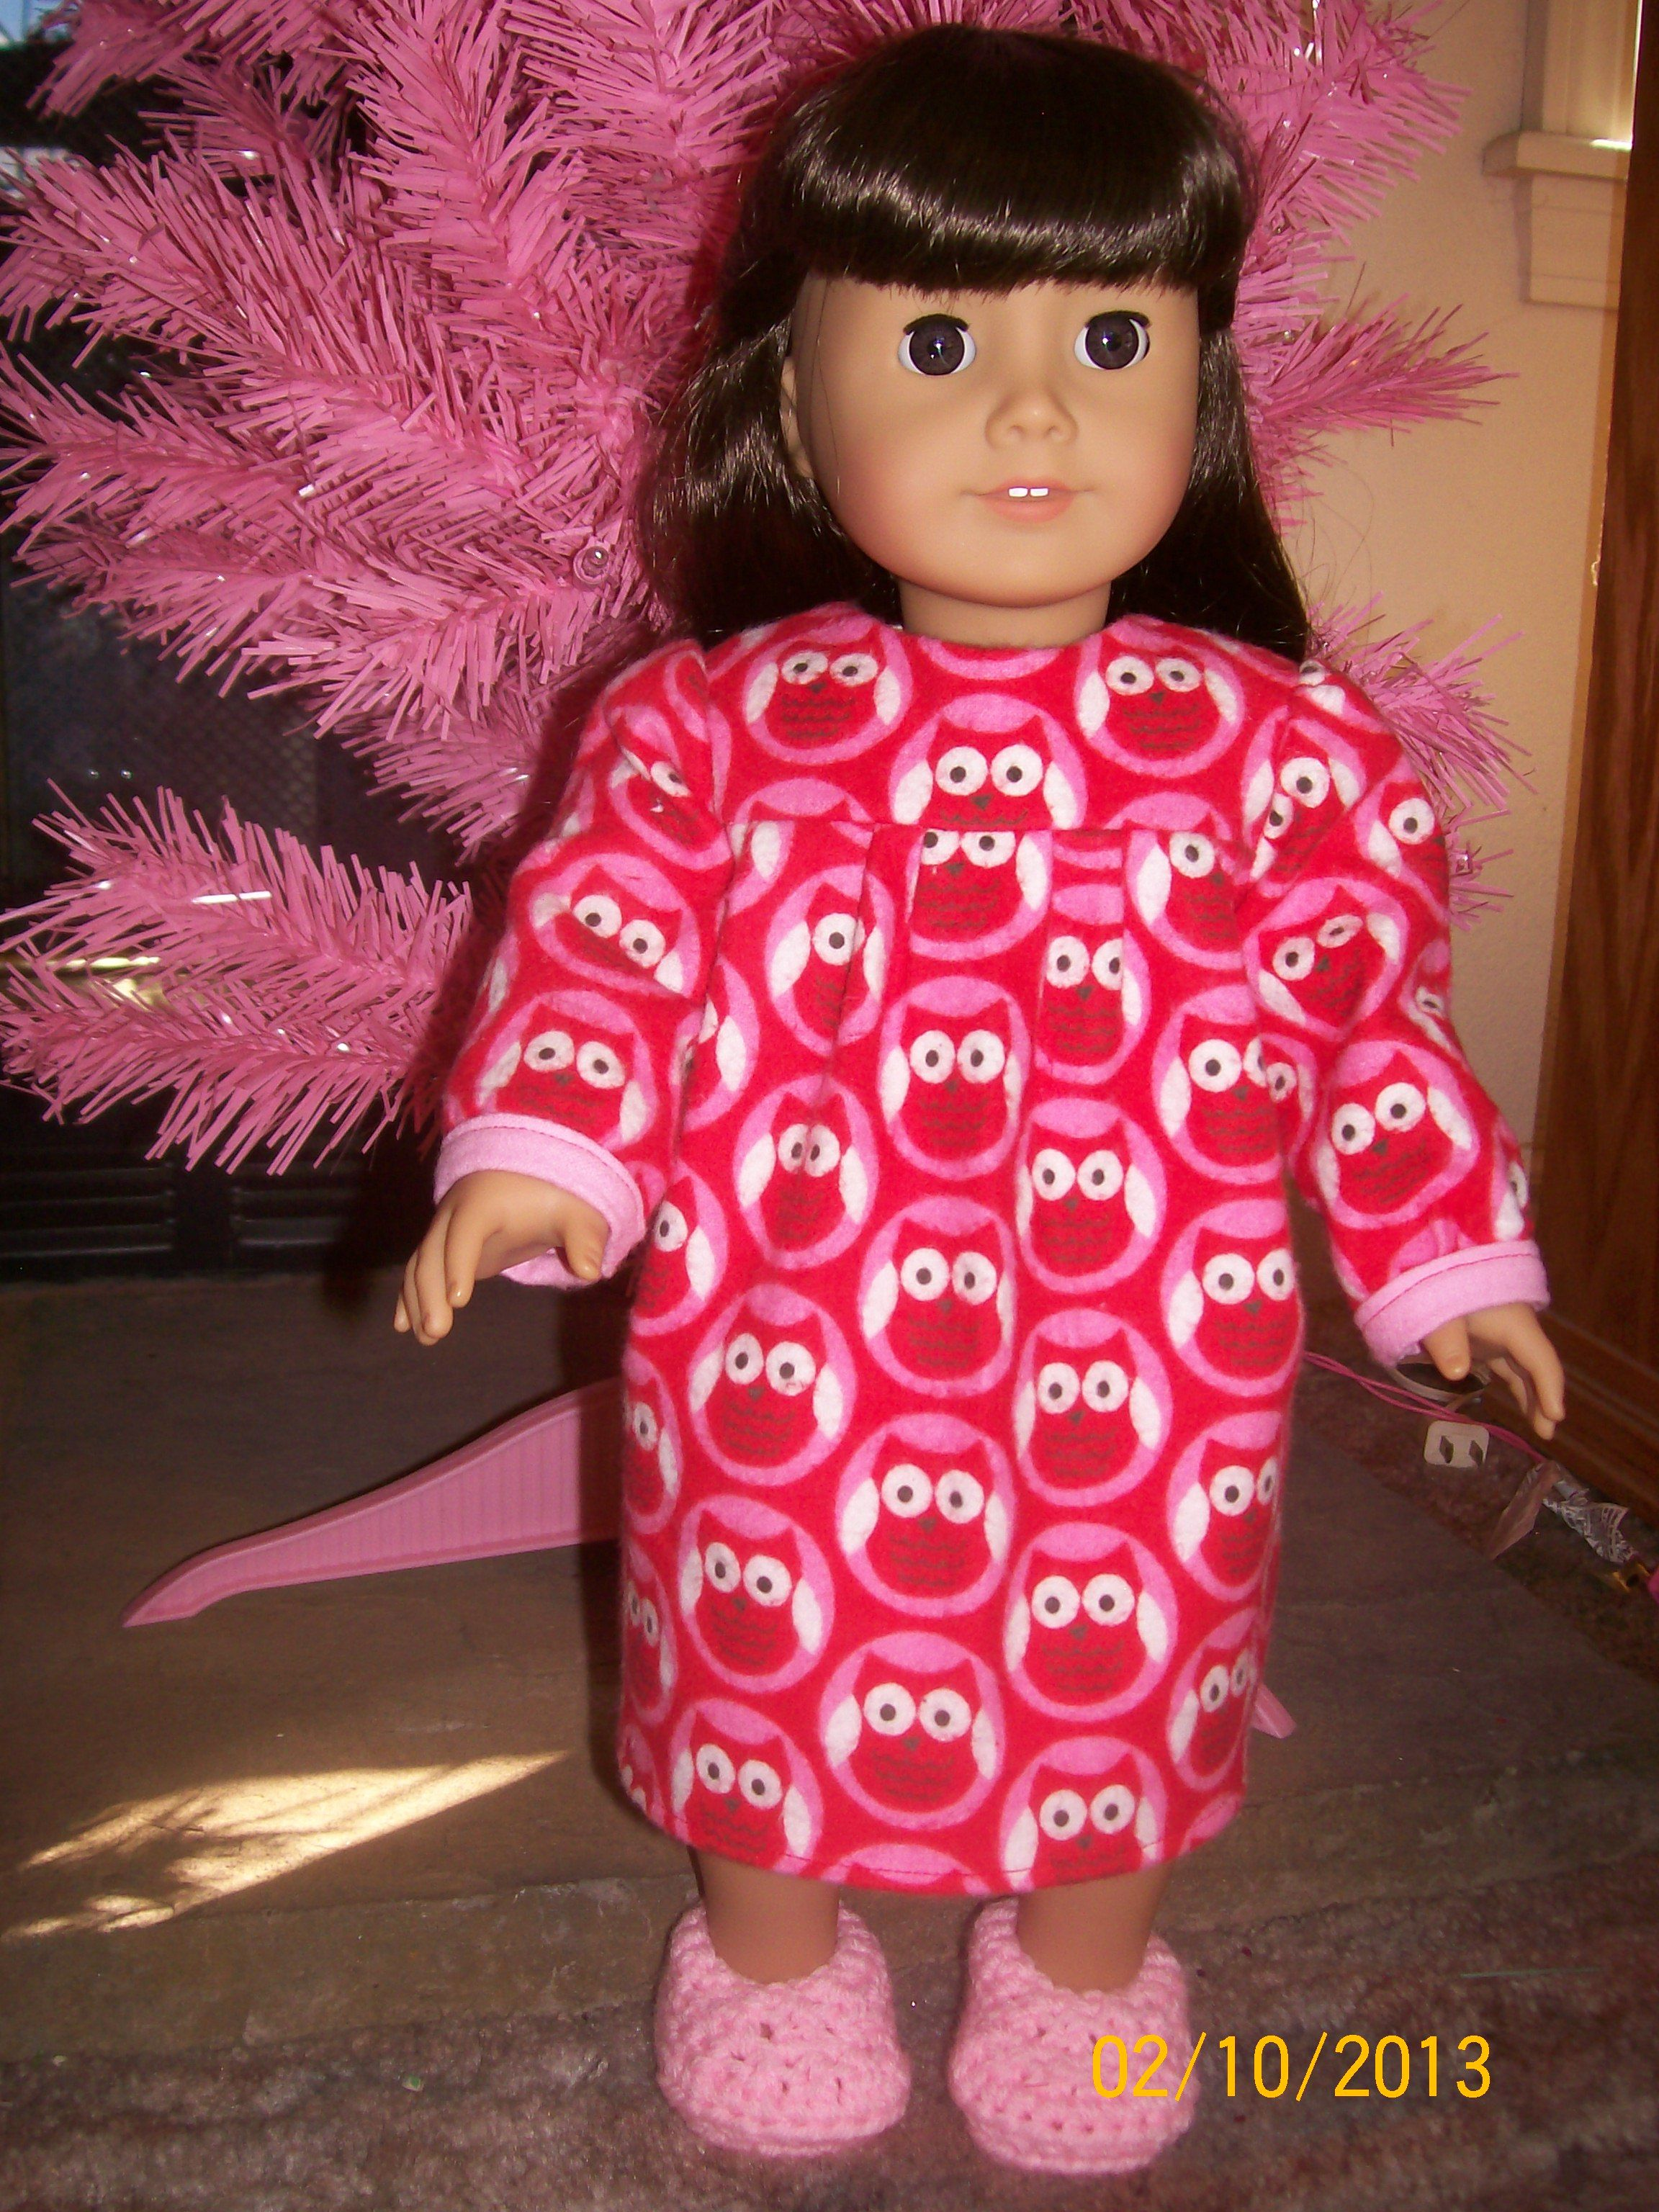 Red flannel nightgown  Flannel nightgown with crocheted slippers for AG